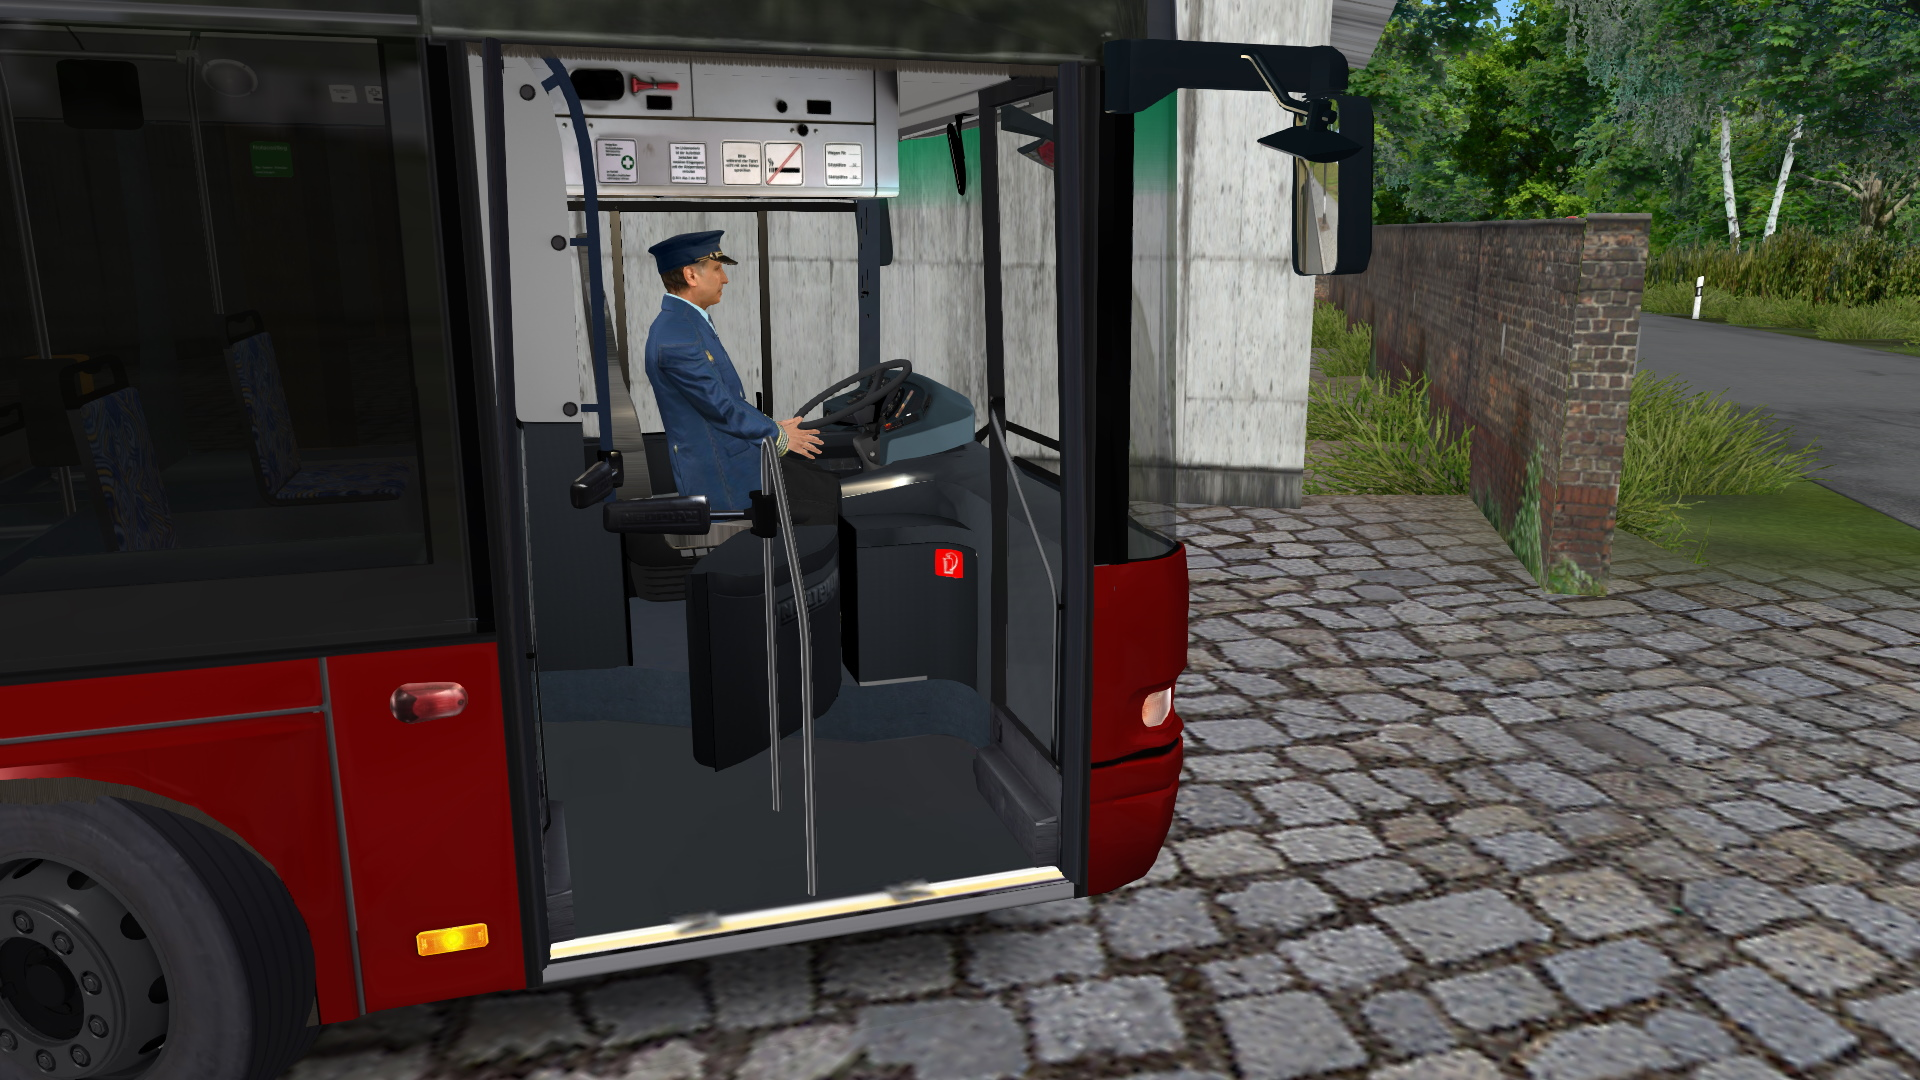 [Omsi2] Neoplan Centroliner Euro 3 BETA V 0.7 - PATCH/UPDATE! (by Kevin2704) 10556-3-jpg